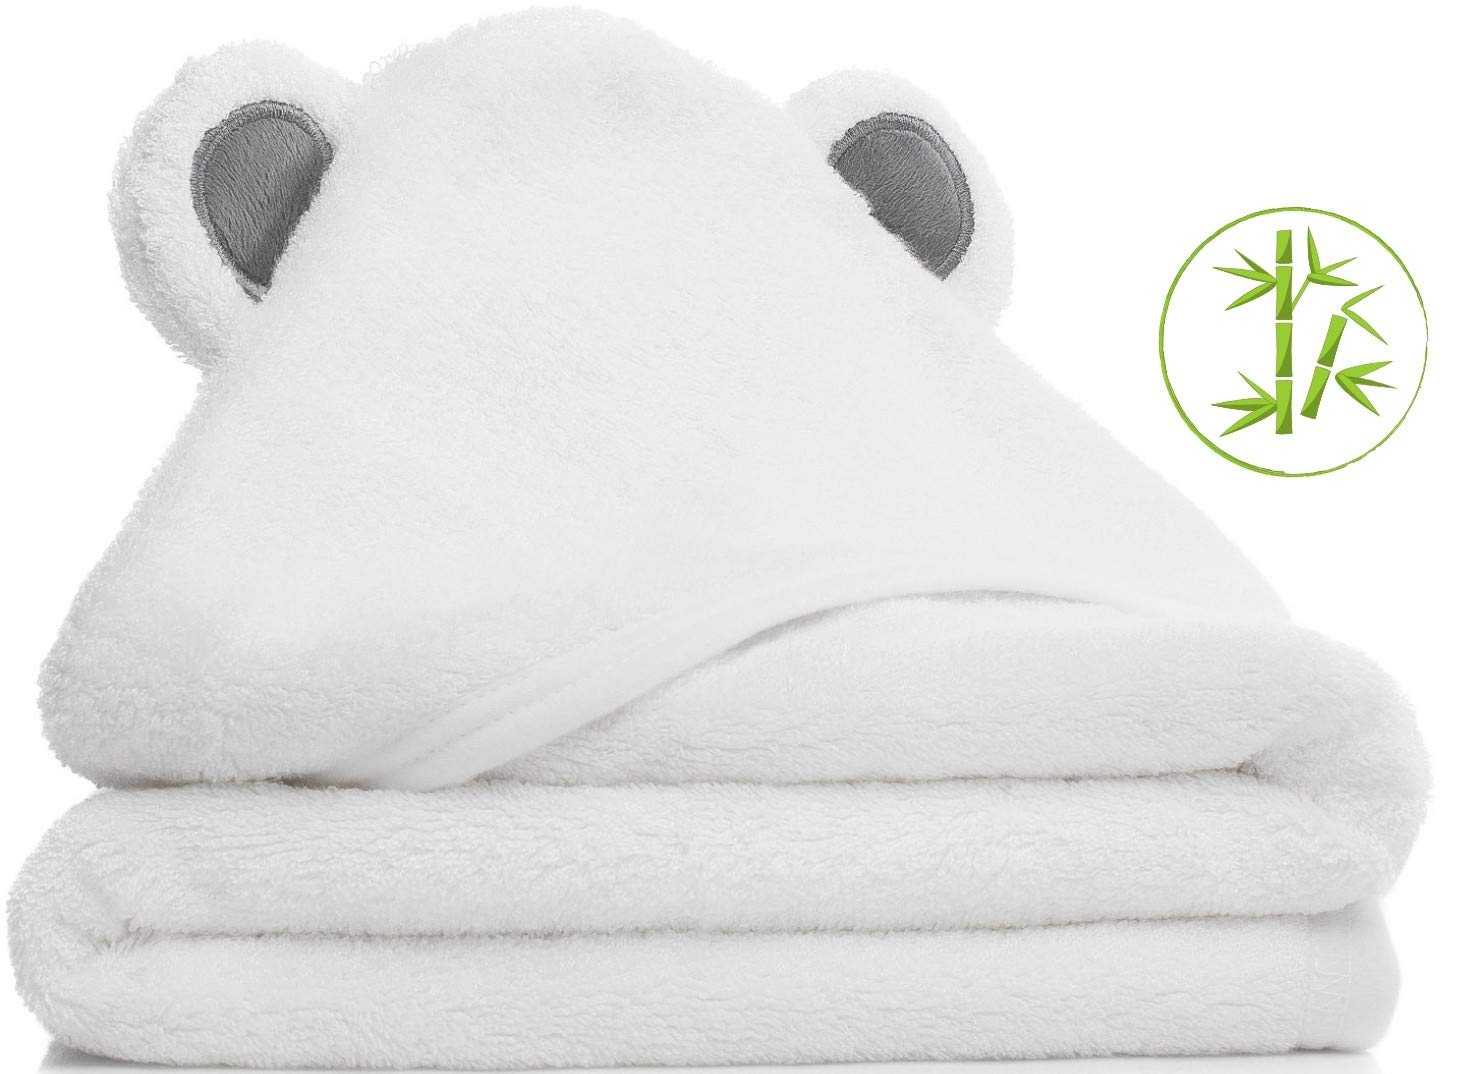 Hooded Baby Towel Set | Organic Bamboo | Soft | Absorbent | Hypoallergenic | Premium Baby Shower Gift for Boys and Girls